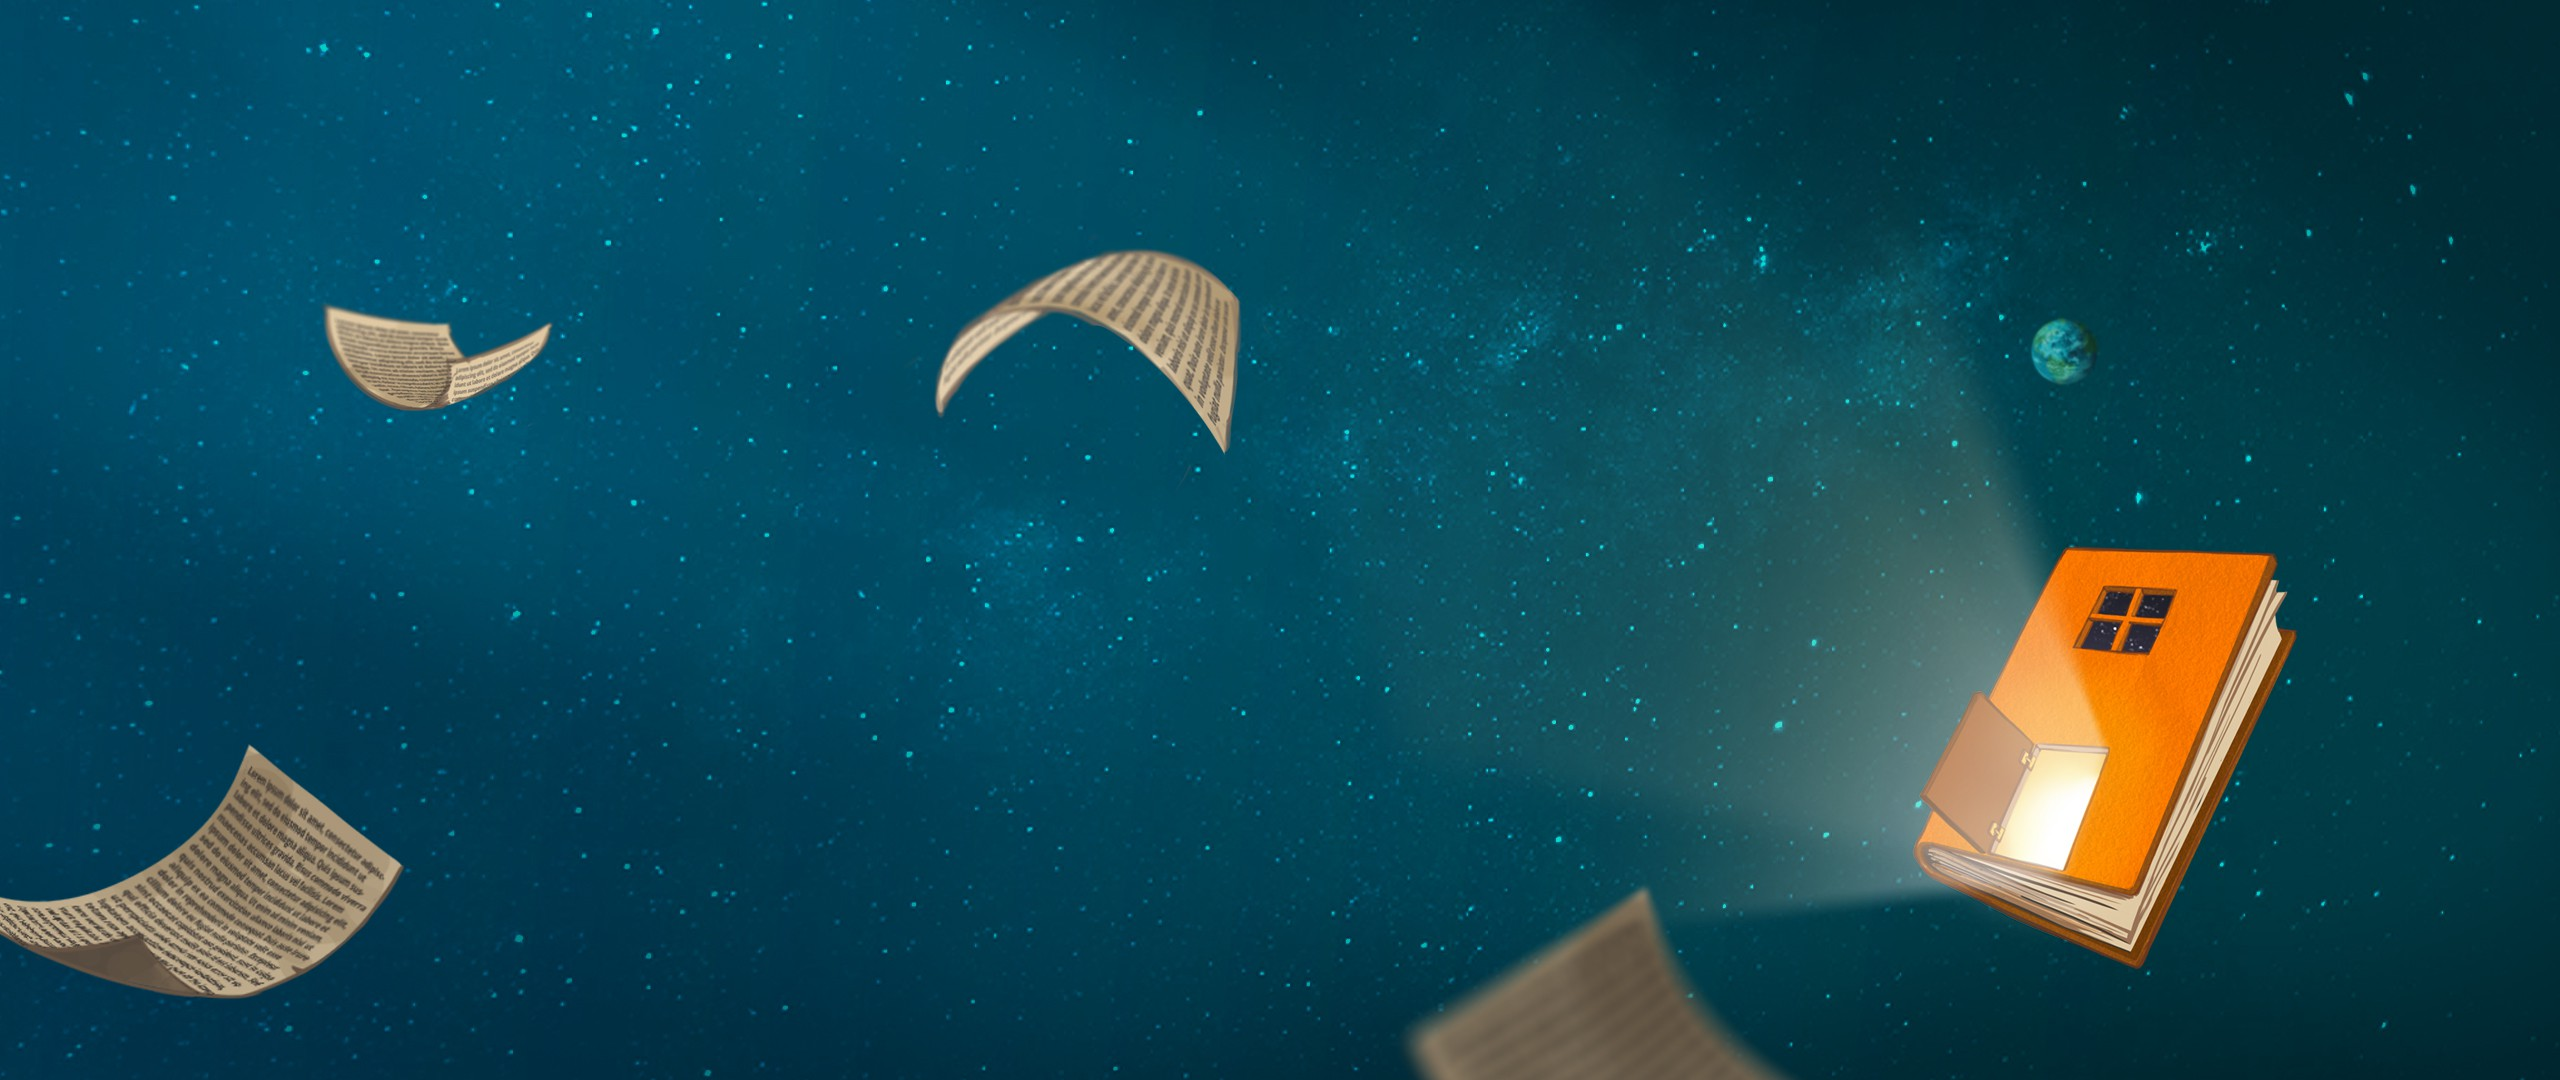 The hidden universe of a magic book lost in time and space